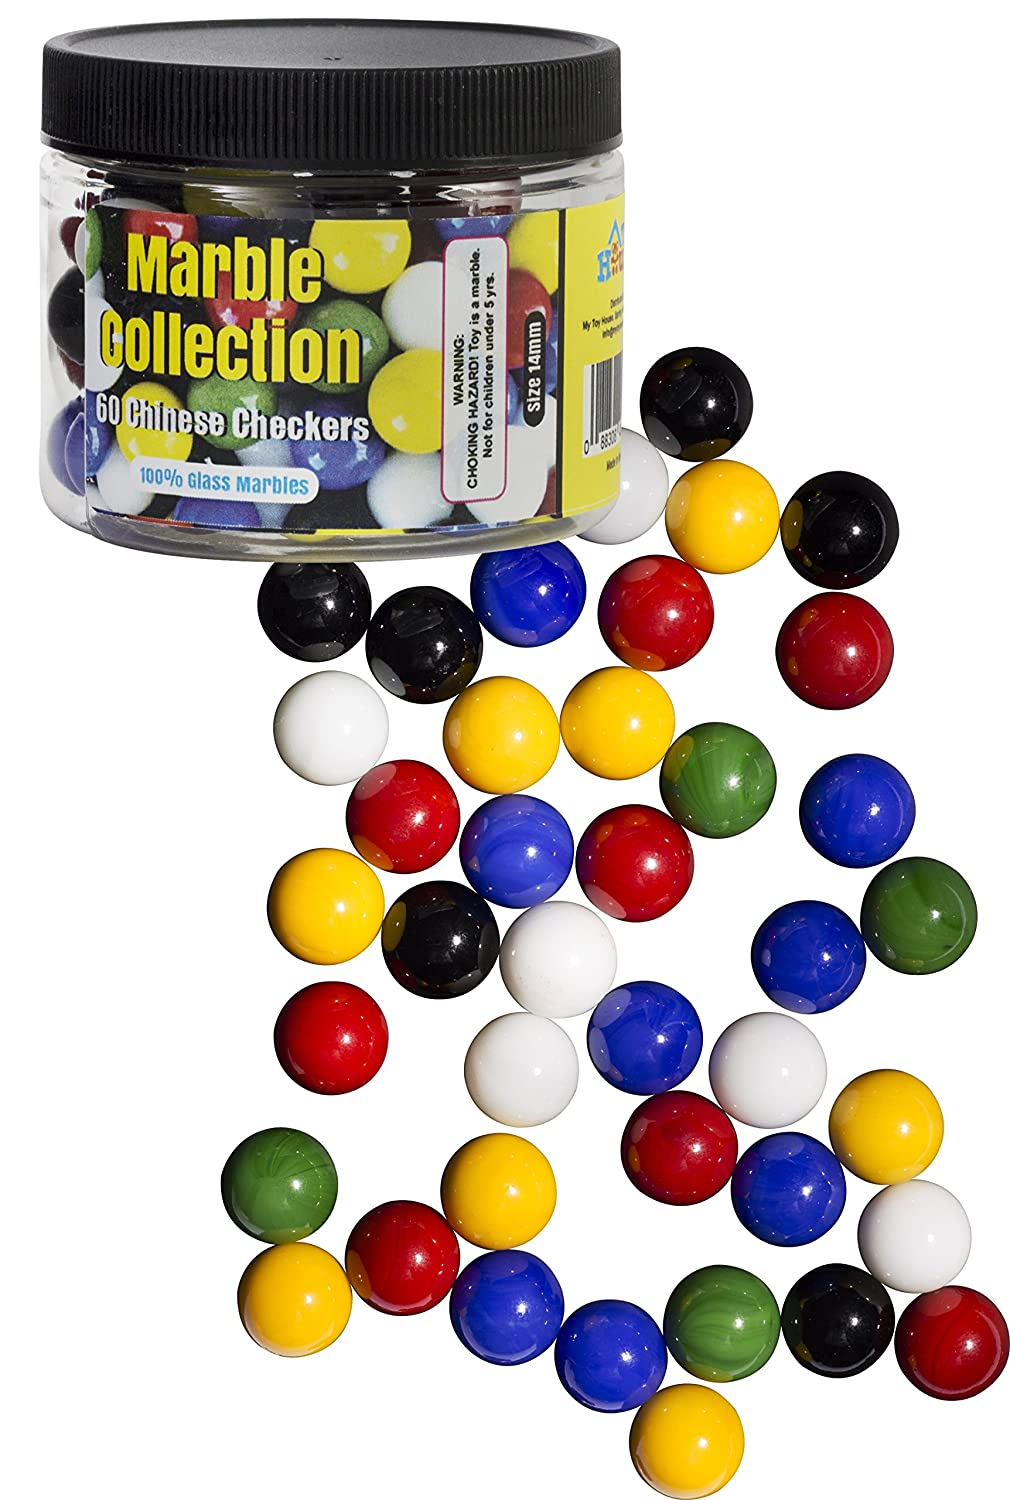 Chinese Checkers Glass Marbles Set of 60 10 of each Color with Portable Container